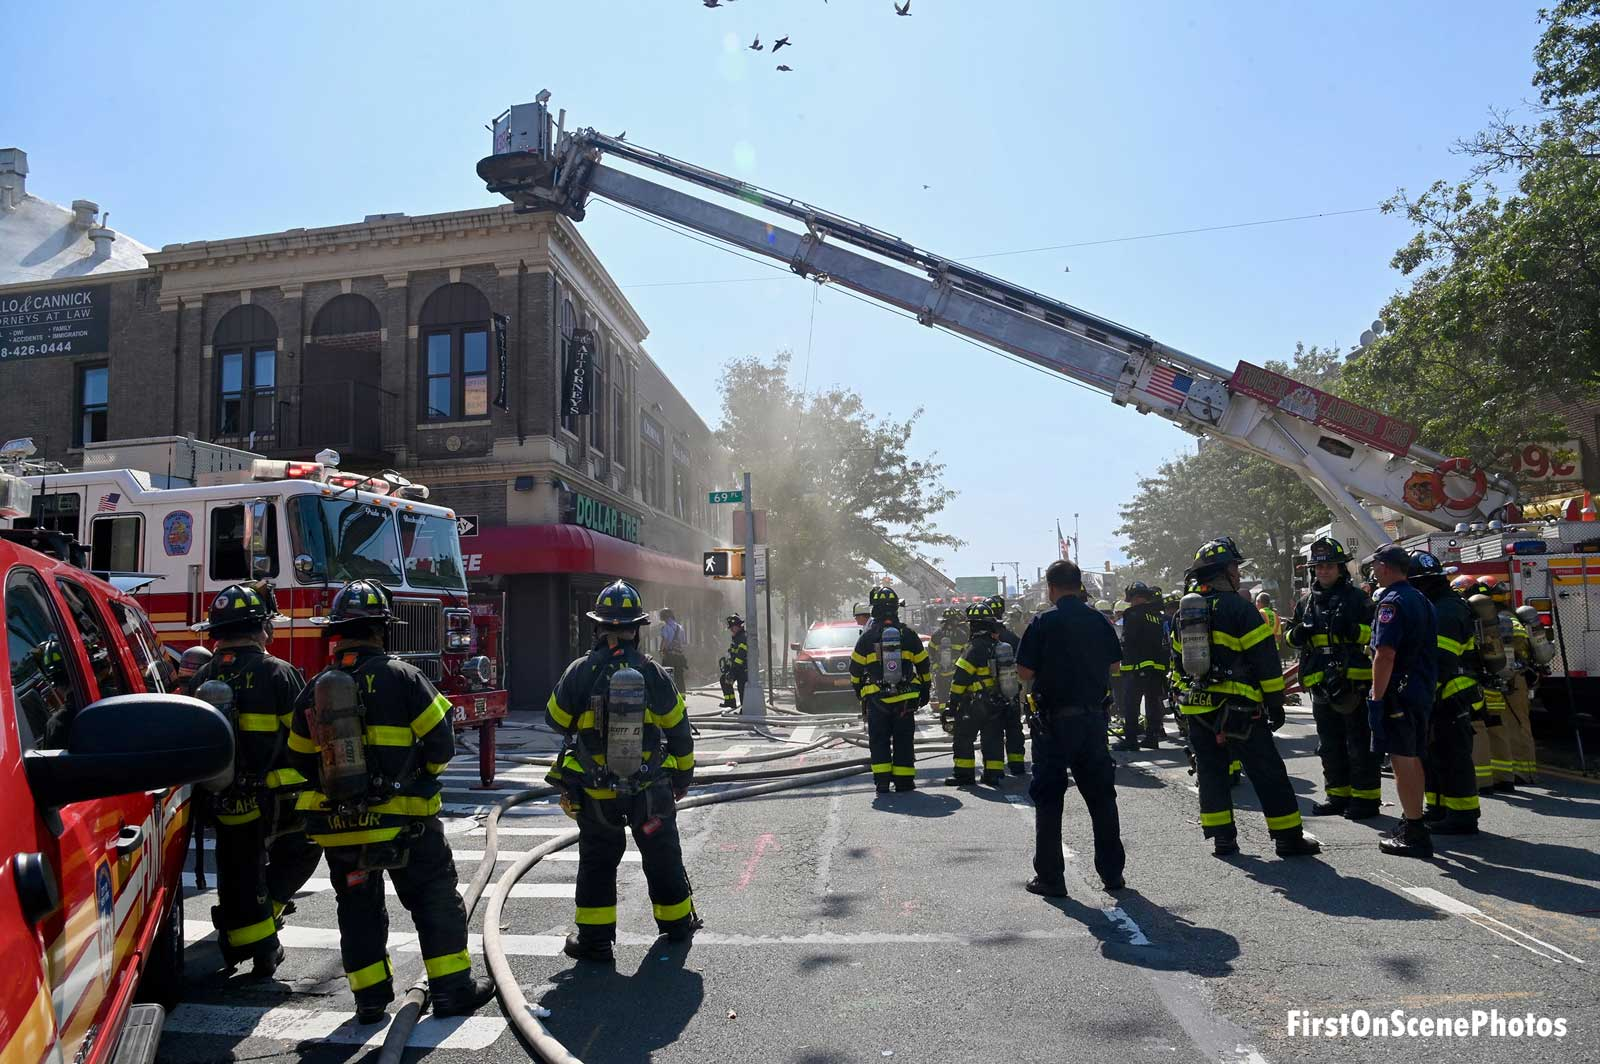 Firefighters and a tower ladder at a fire in NYC